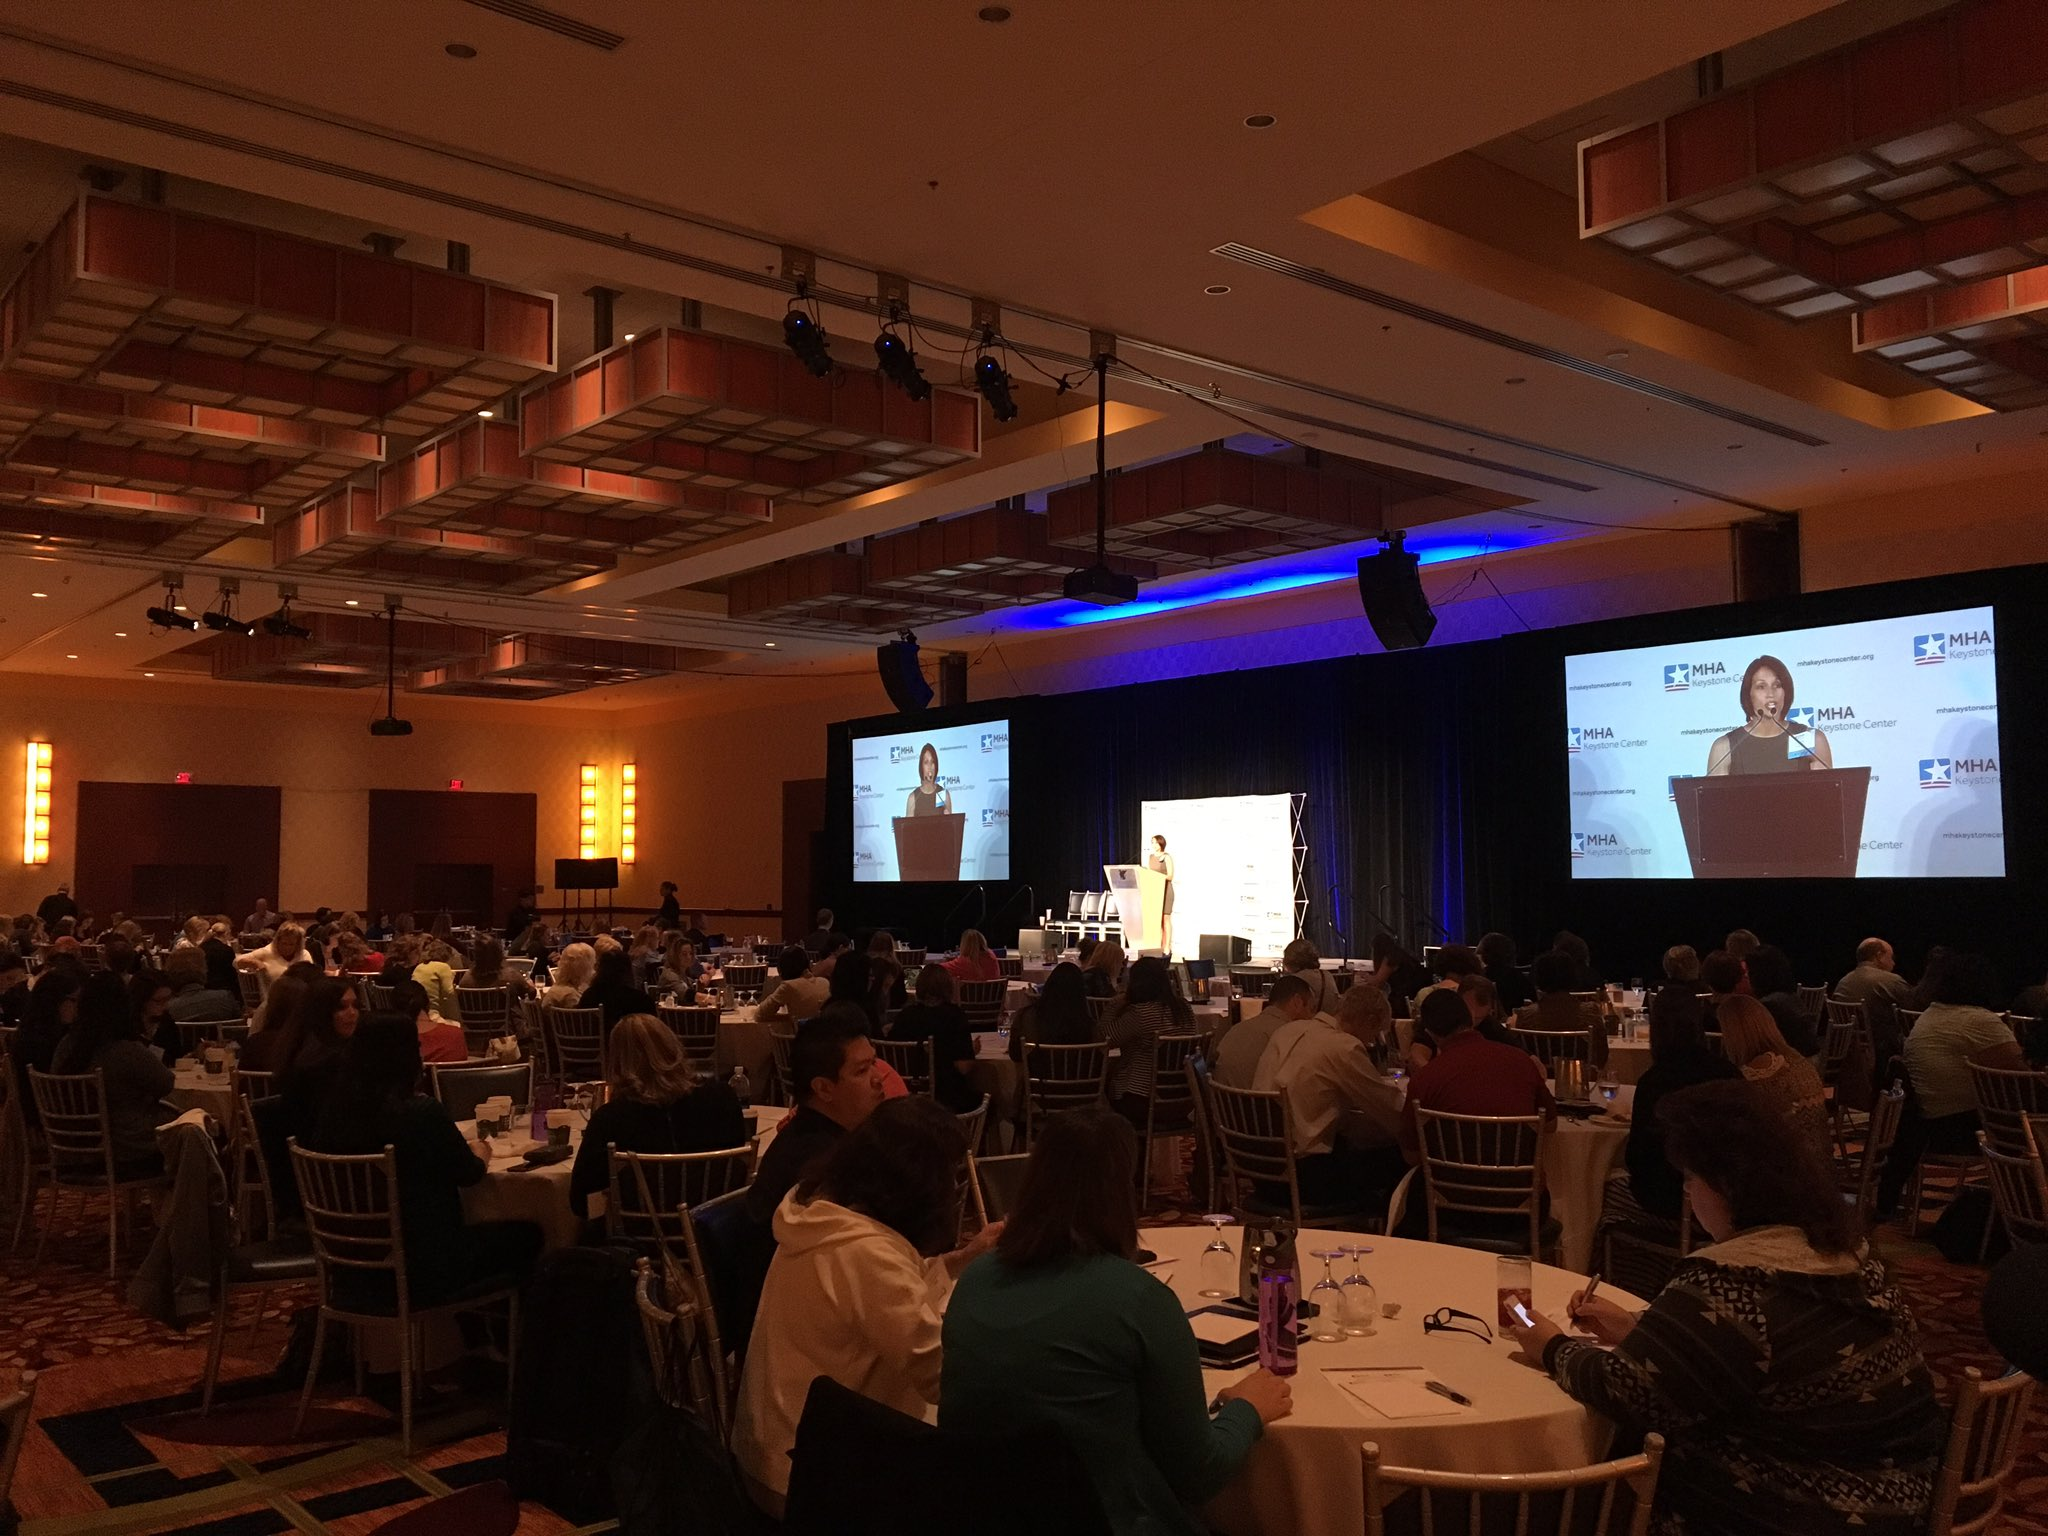 #MHAKeystone's @corinepope23 covers today's housekeeping items & encourages attendees to use Sli.do! #MHAKeystone https://t.co/J1JLKHs0Oh